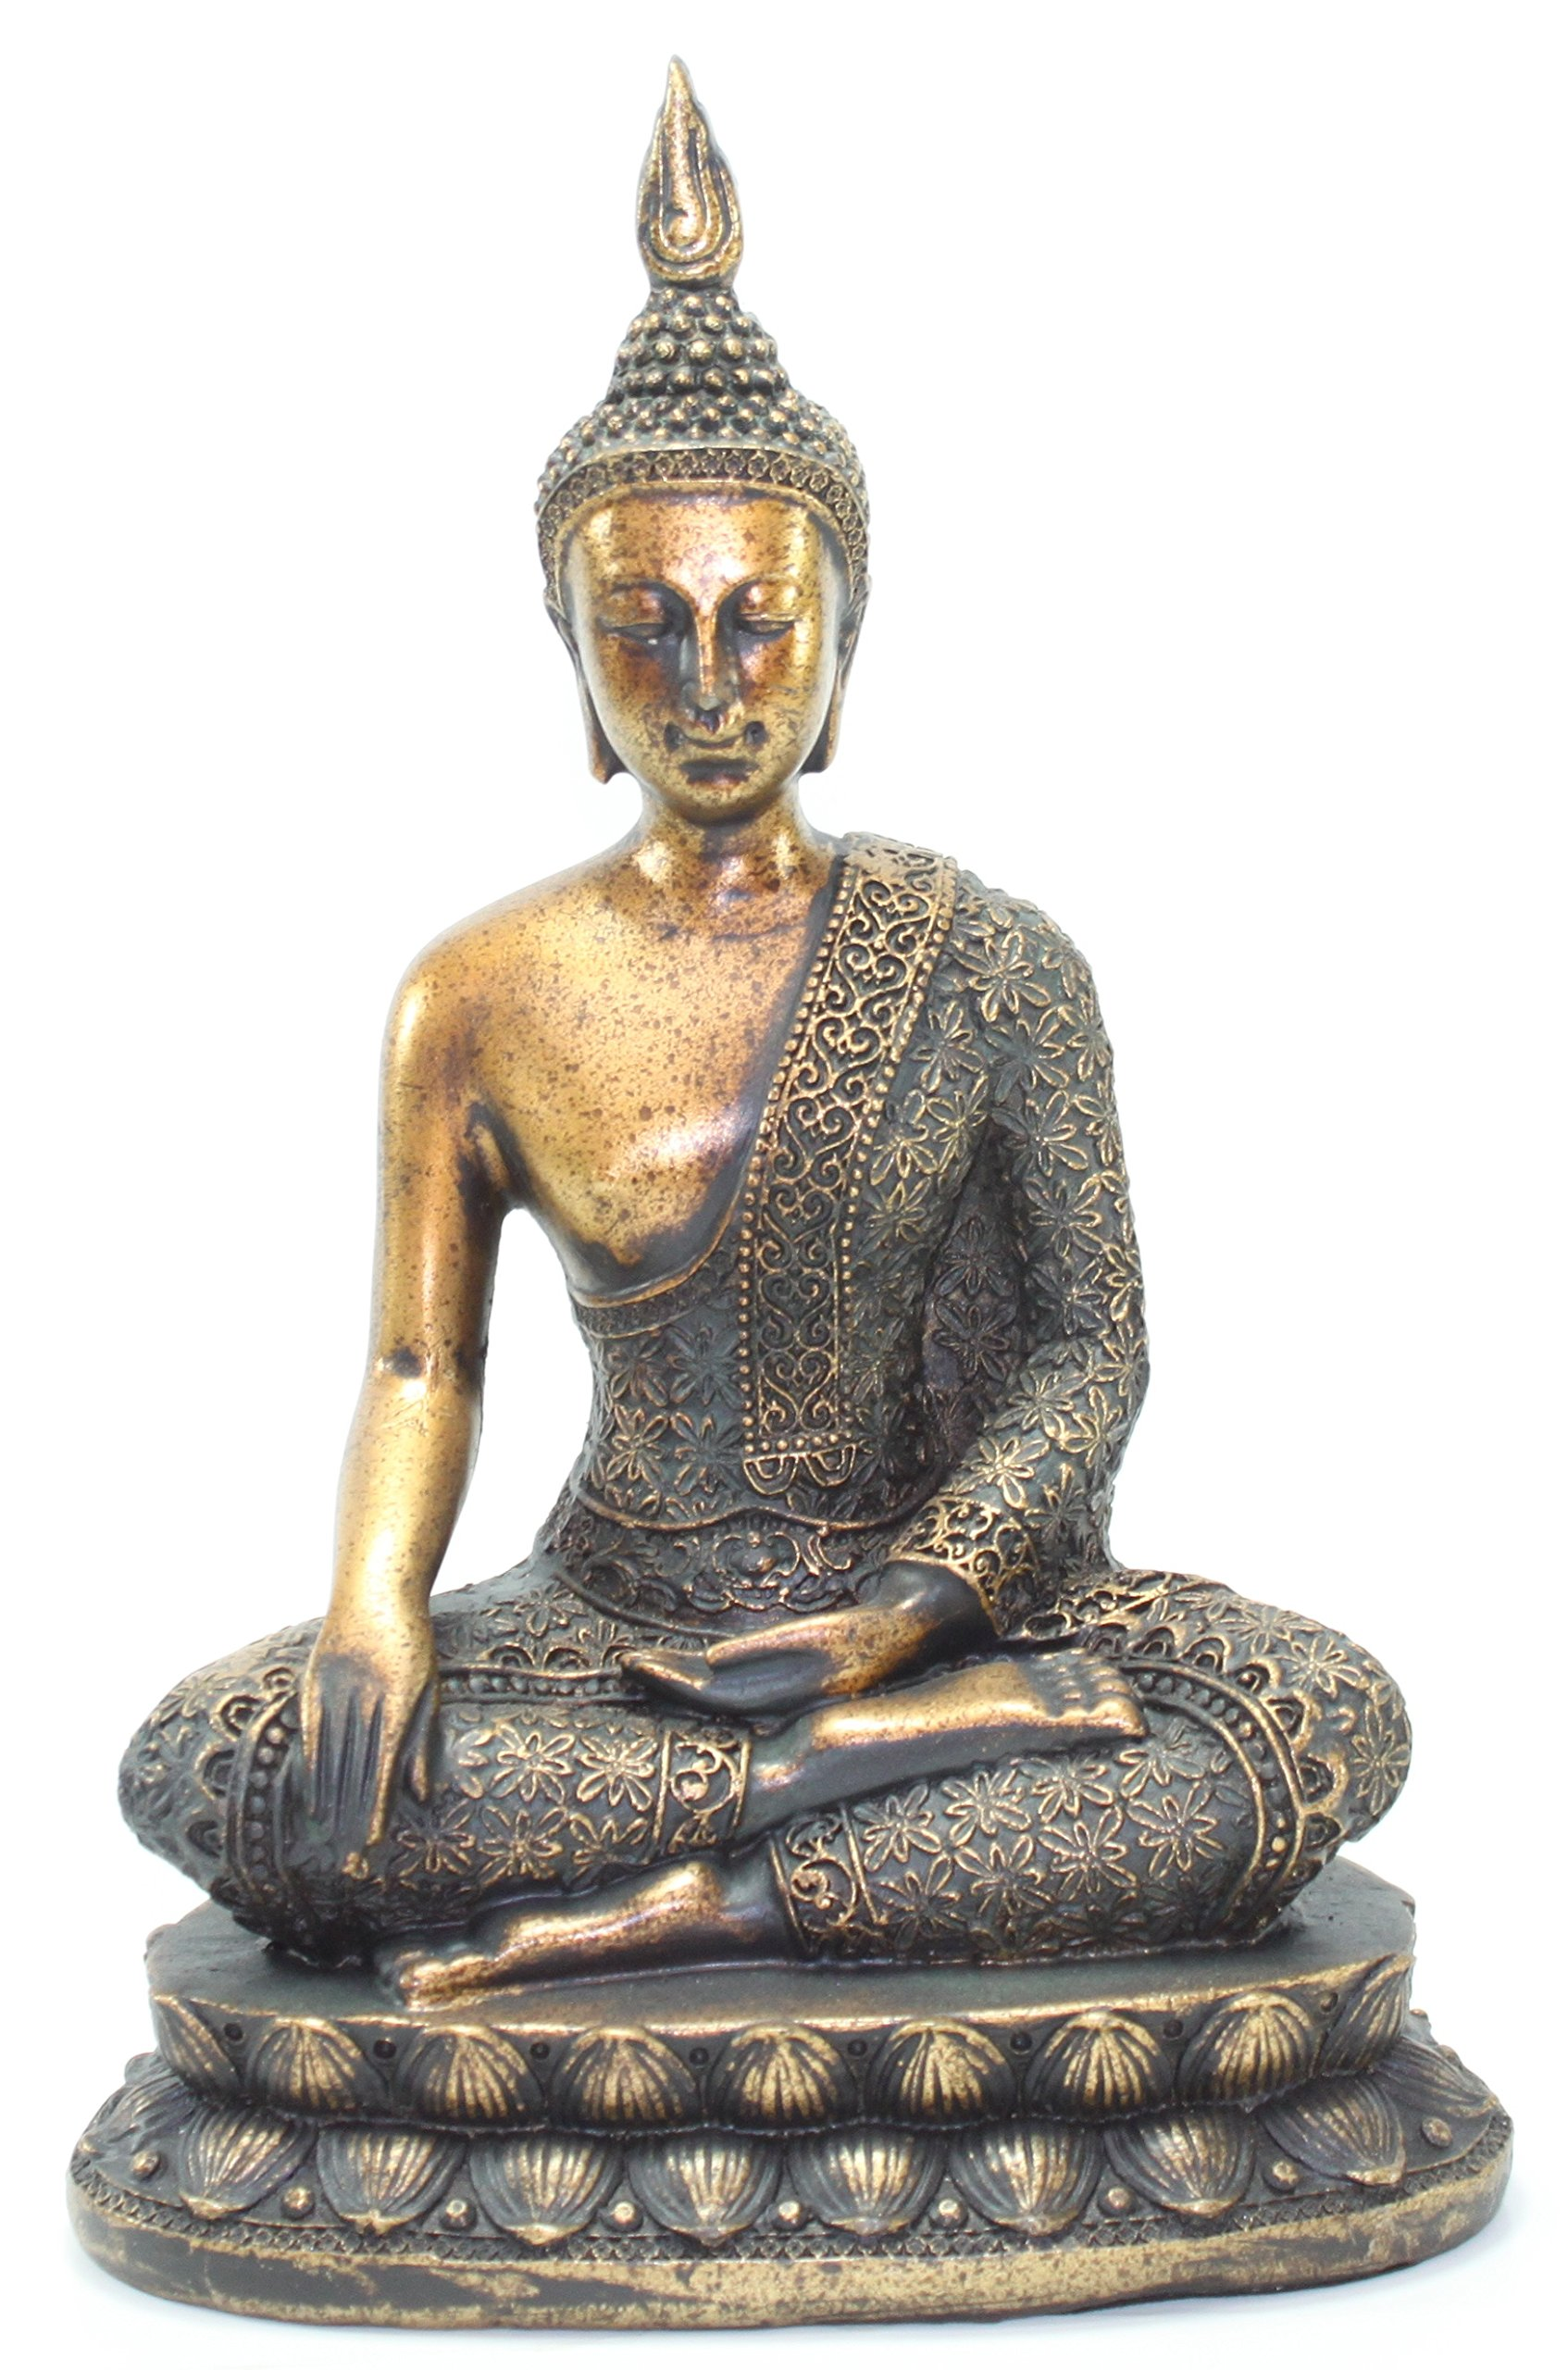 Feng Shui 8.5''(H) Thai Earth Touching Shakyamuni Meditating Buddha Figurines Peace Luck Prosperity Statues Paperweights Home Decor Housewarming Gift G16517 ~ We Pay Your Sales Tax by We pay your sales tax